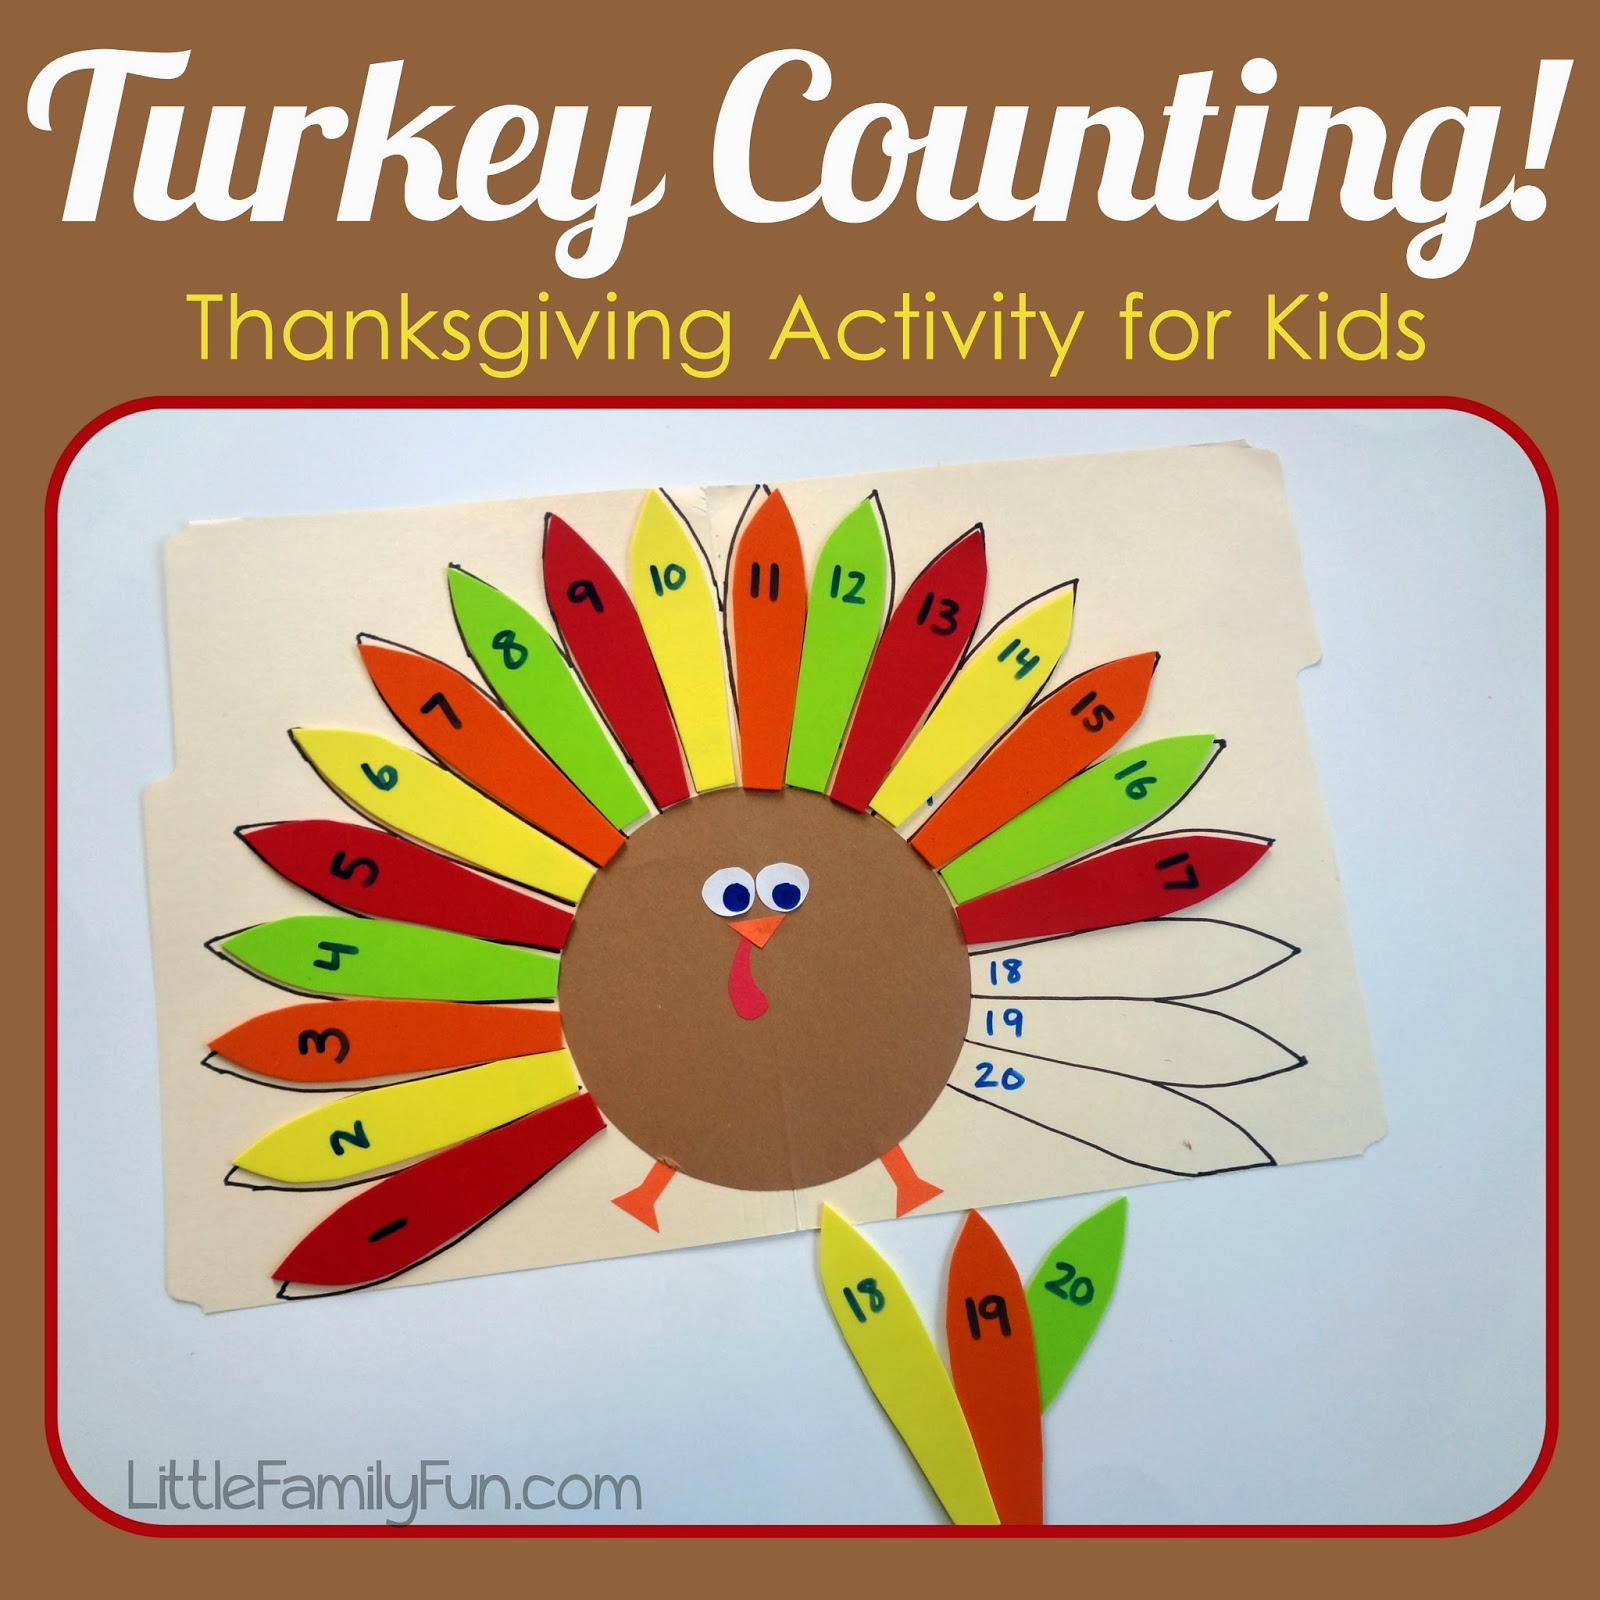 Little Family Fun Counting Turkey Feathers